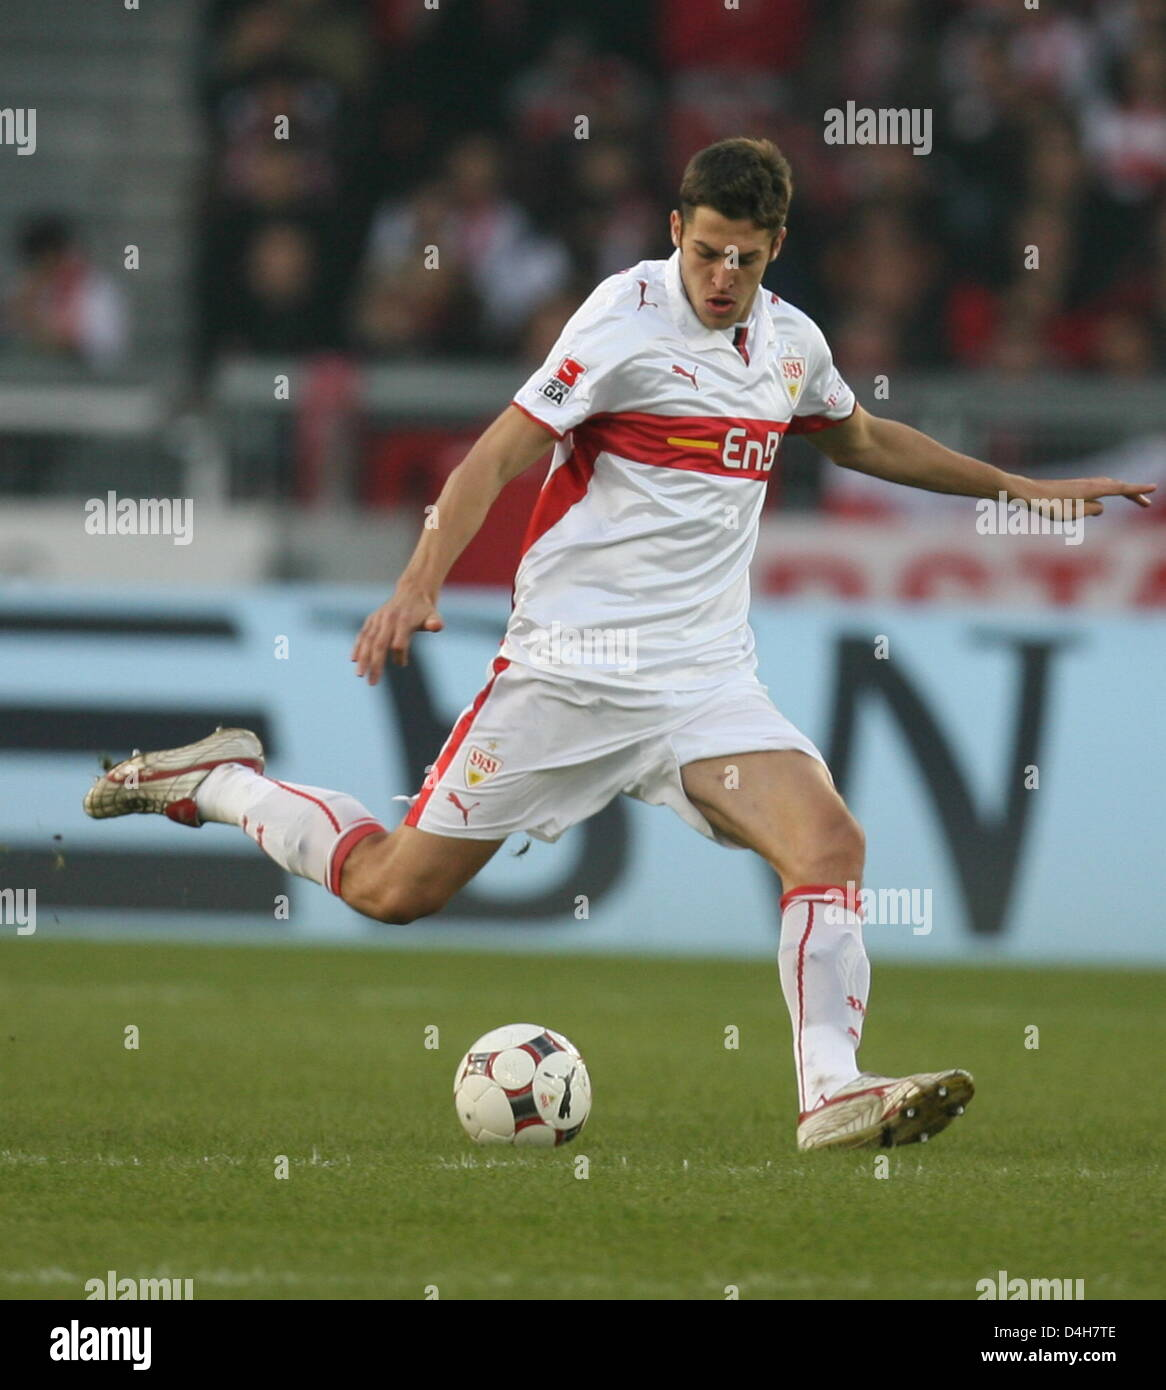 Stuttgart's French Matthieu Delpierre seen in action during the Stock Photo  - Alamy